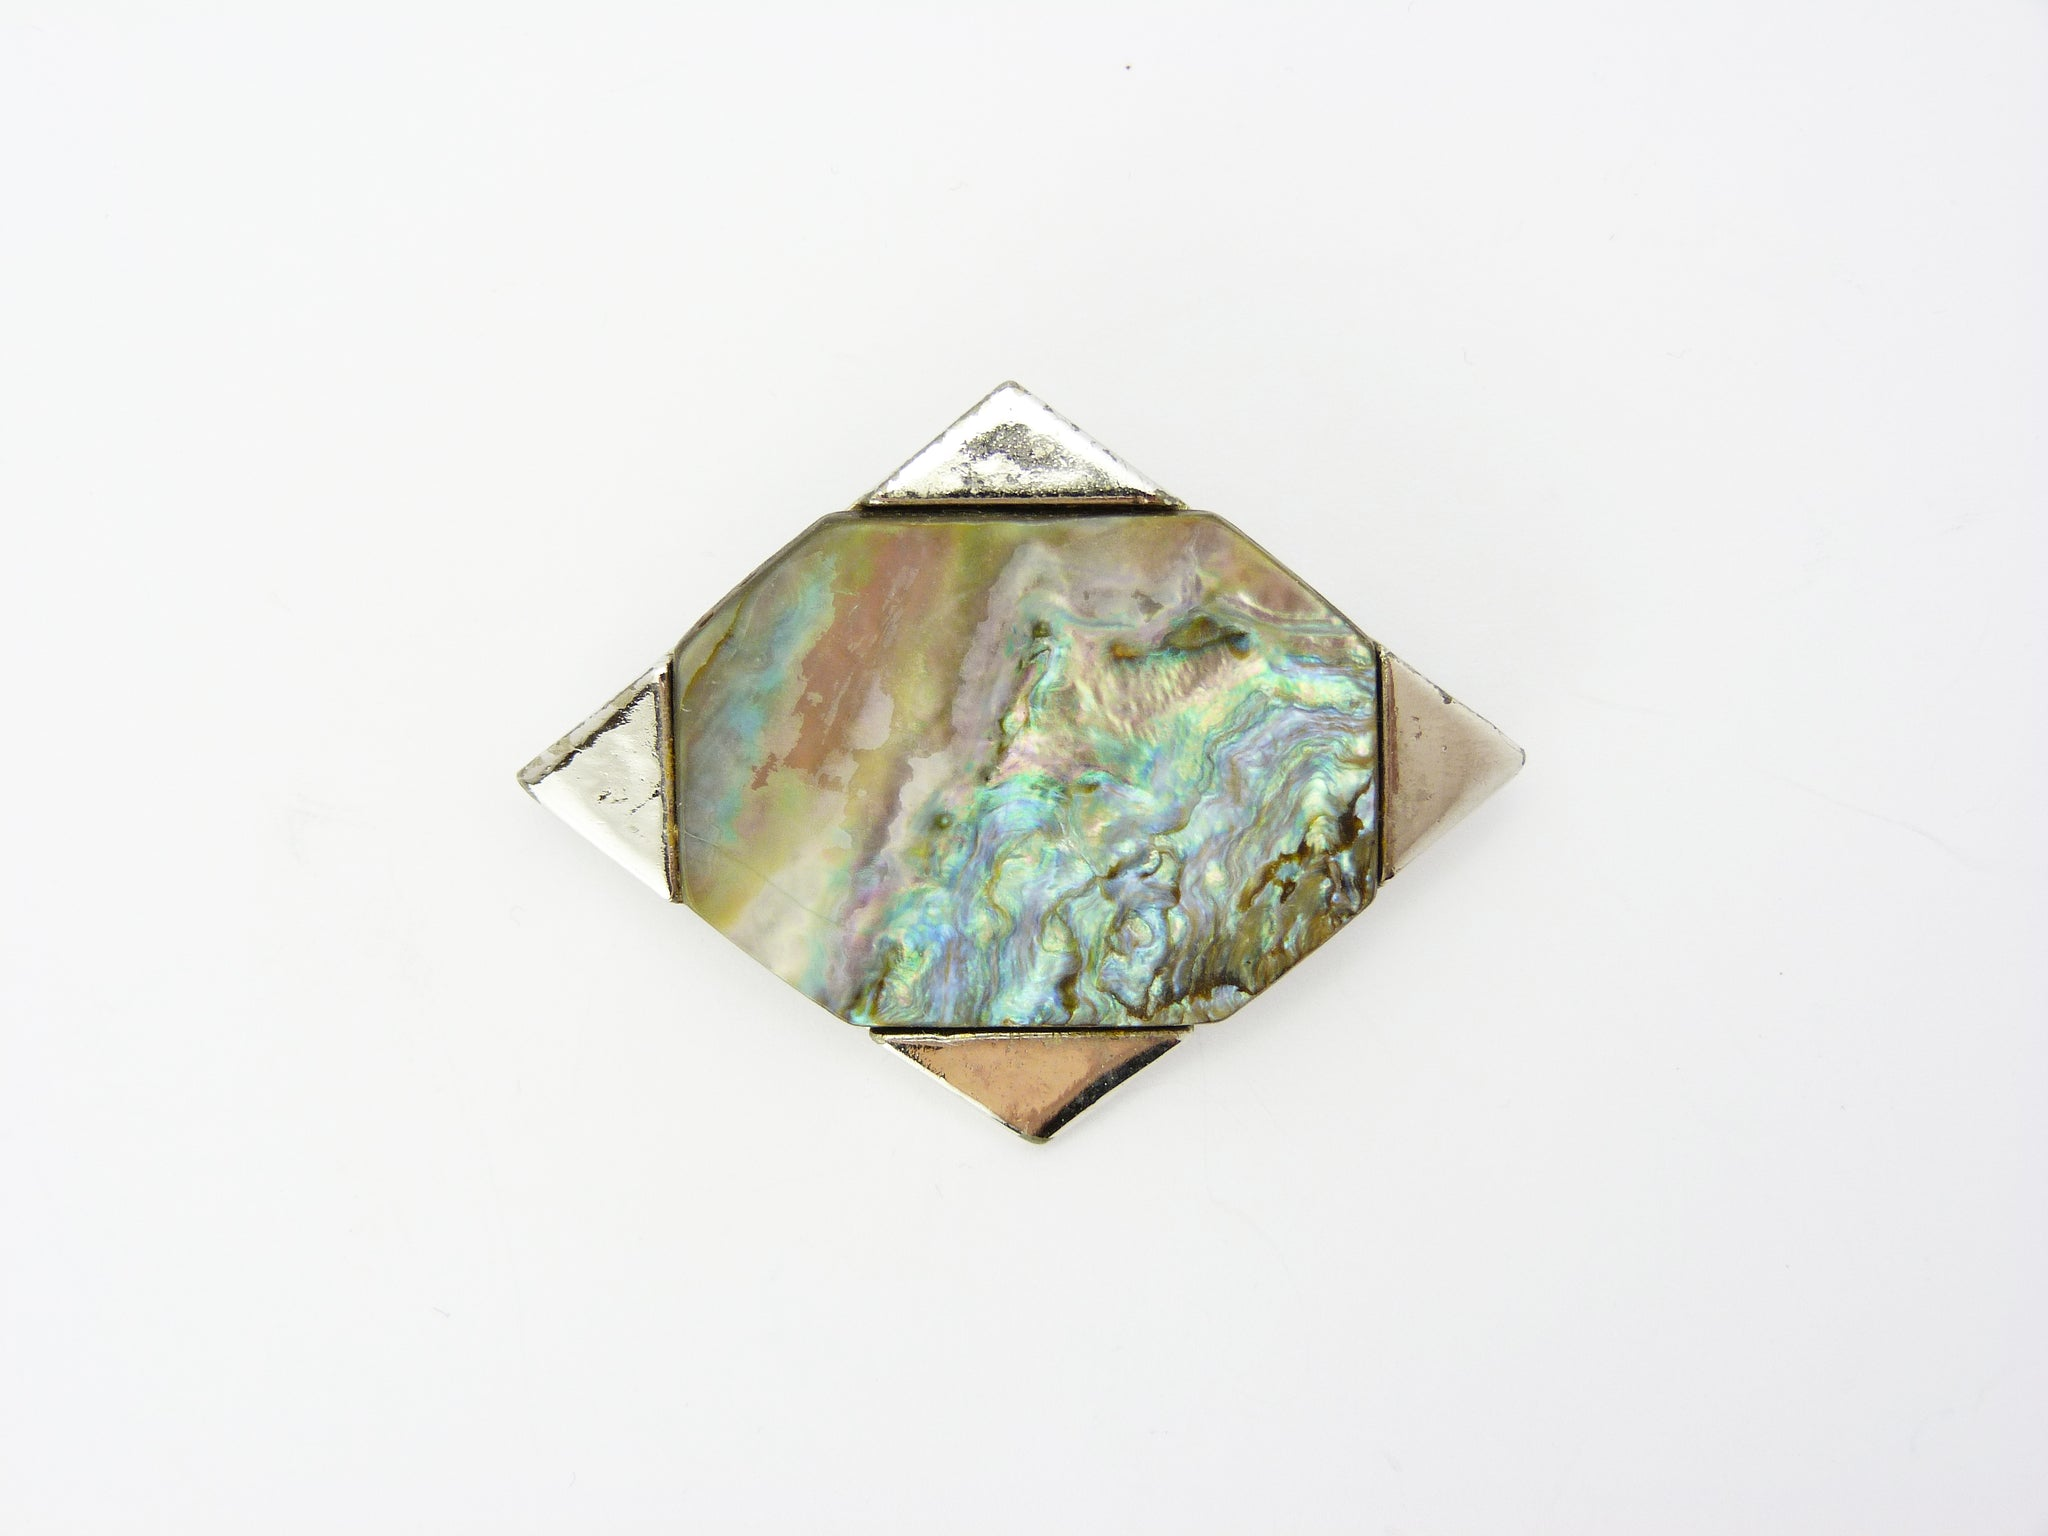 Vintage Abalone Shell Brooch Signed Exquisite